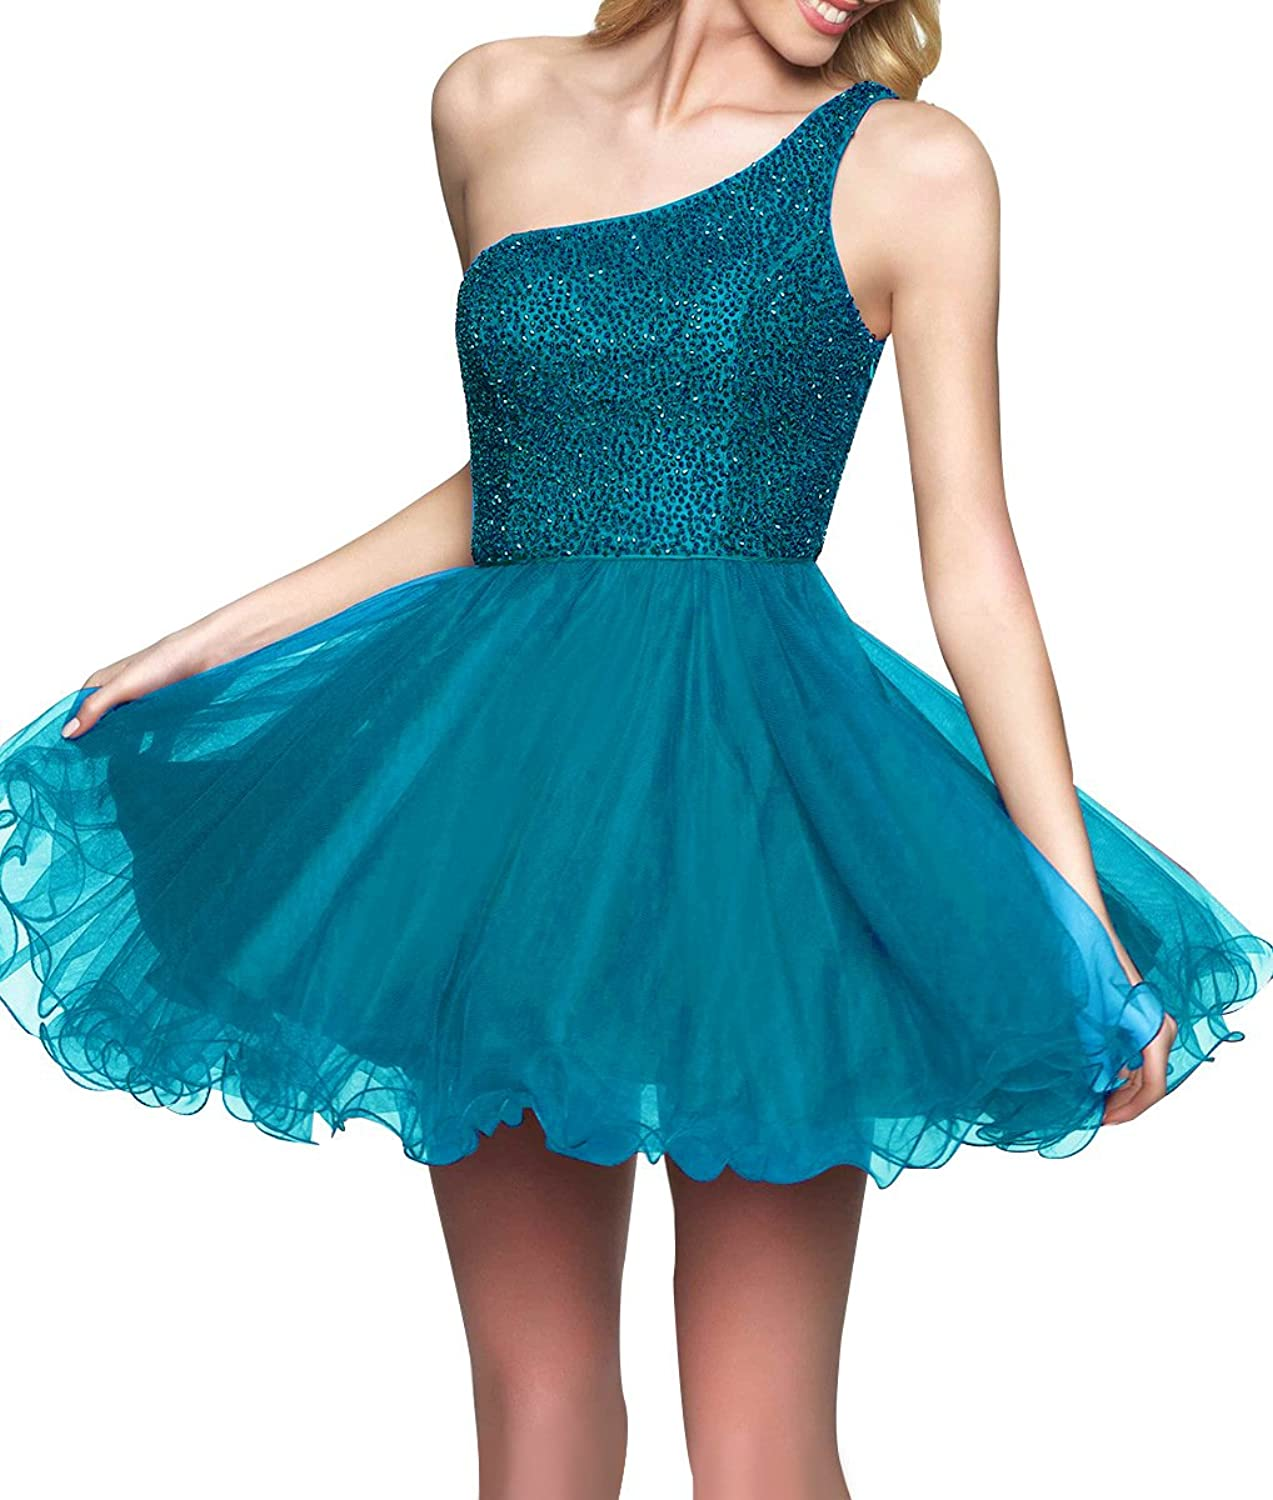 Homecoming Dresses Beaded One Shoulder Tulle Formal Women Evening Prom Cocktail Gown